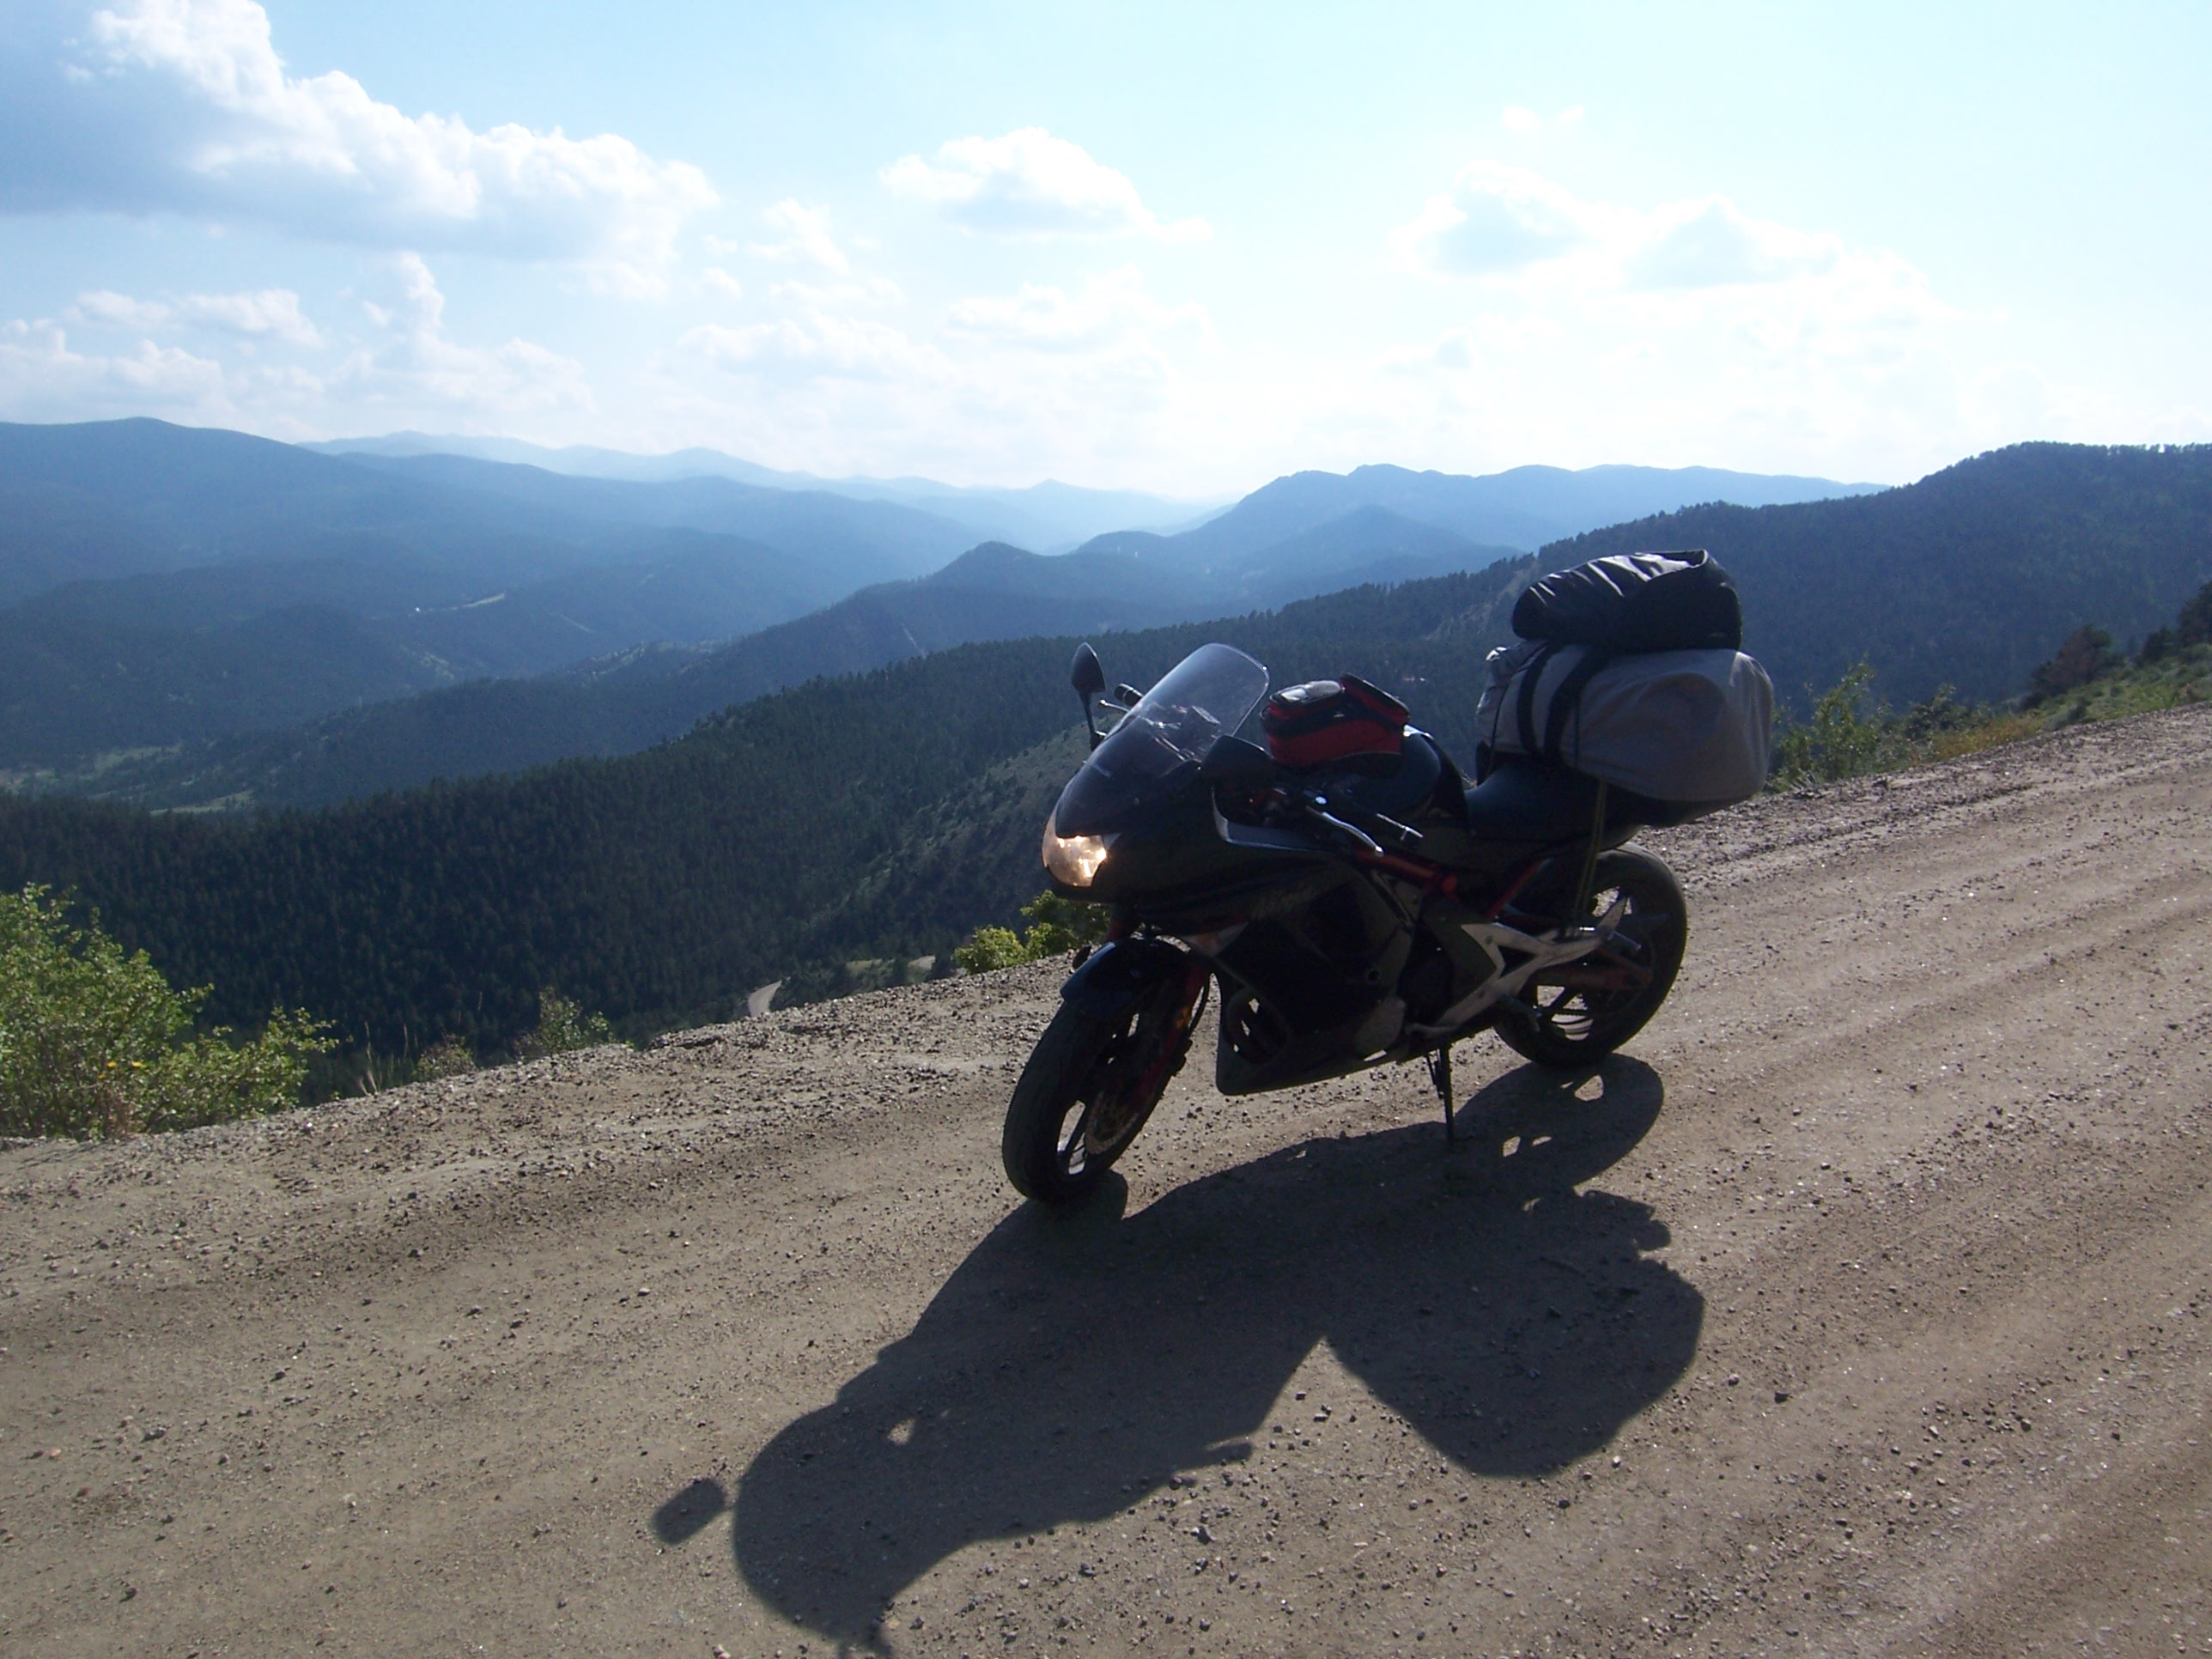 2006 Kawasaki Ninja 650r Review 40000 Miles Later Atlas Rider Wiring Harness Honestly When I Bought The Didnt Know What Term Sport Touring Even Meant All That Mattered To Me Was Comfortable Sitting On